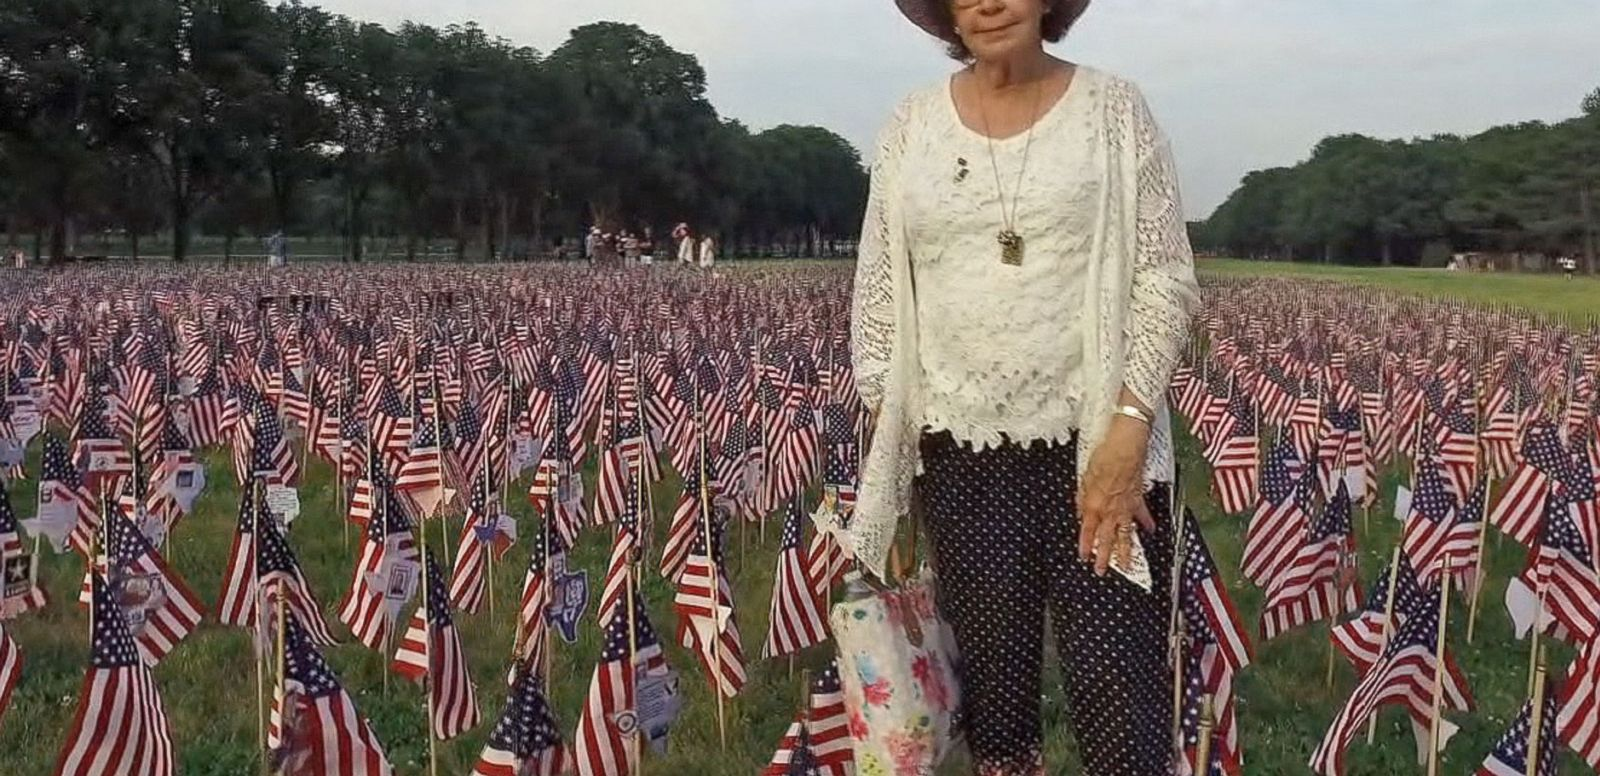 VIDEO: Honoring our Fallen Soldiers with 10,000 Flags